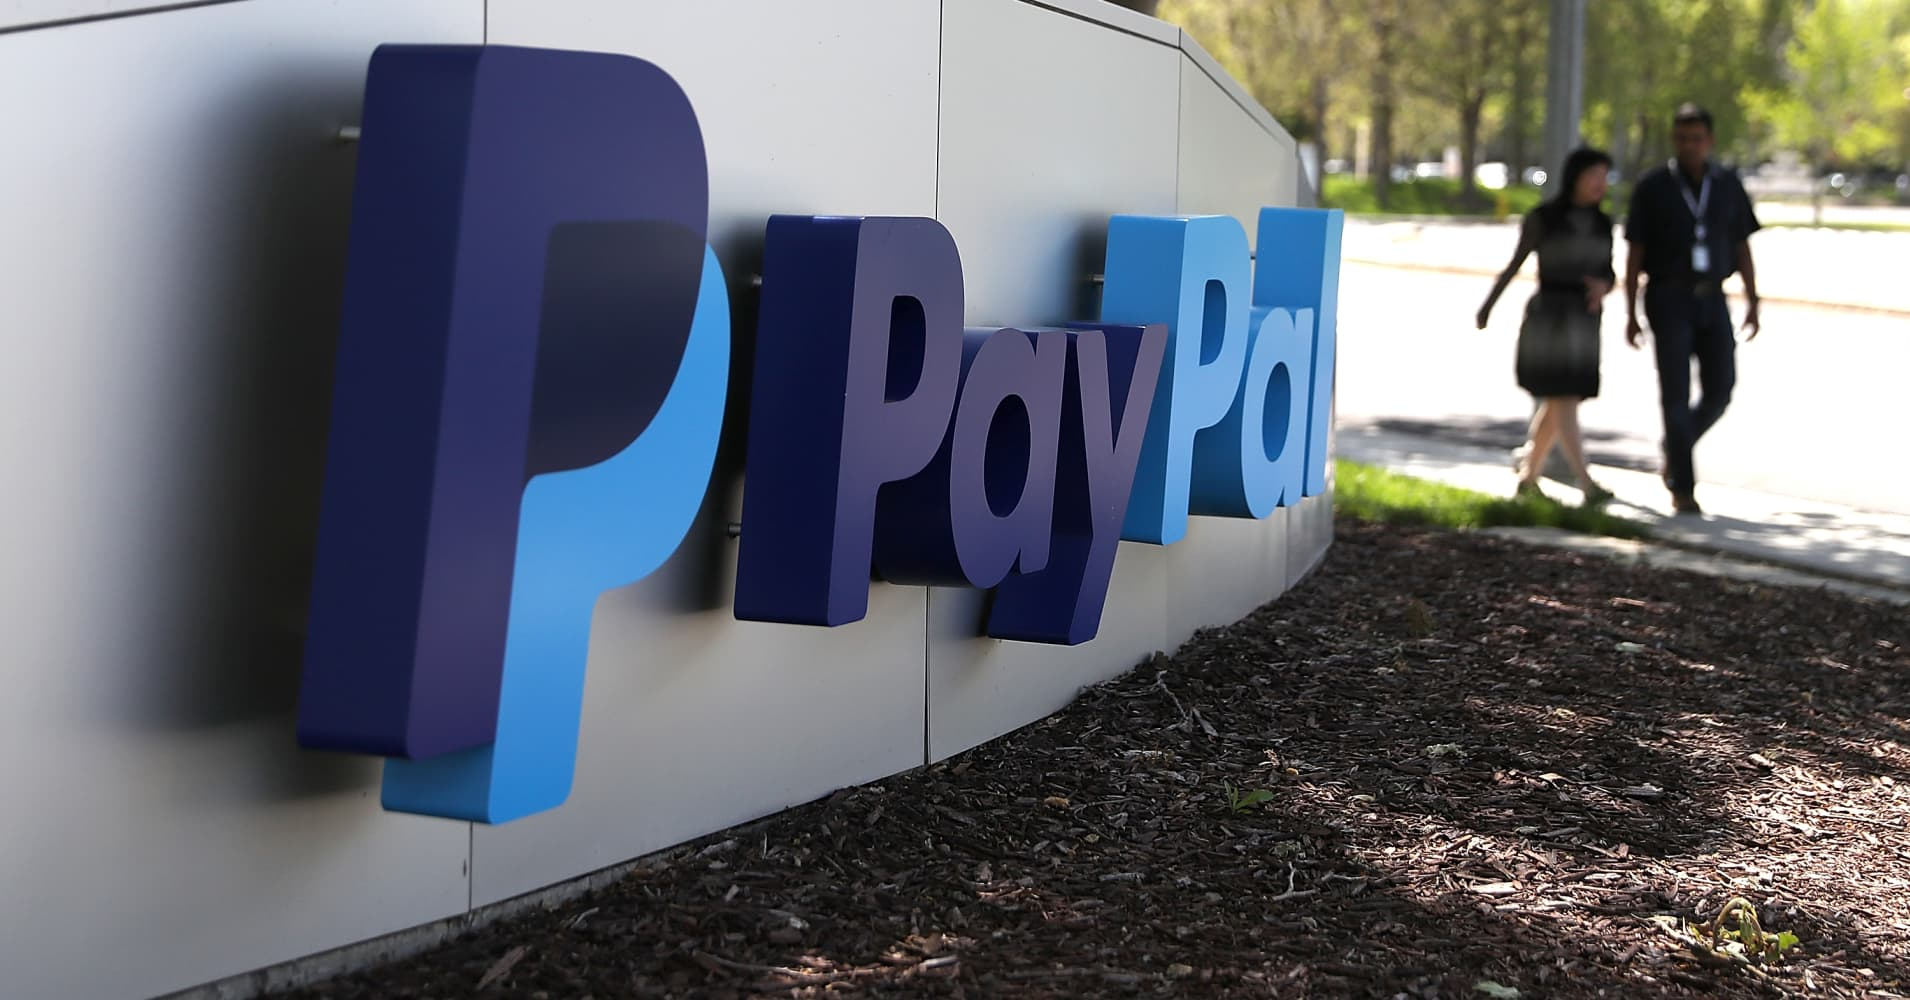 PayPal shares could soon break through the $100 level, says trader